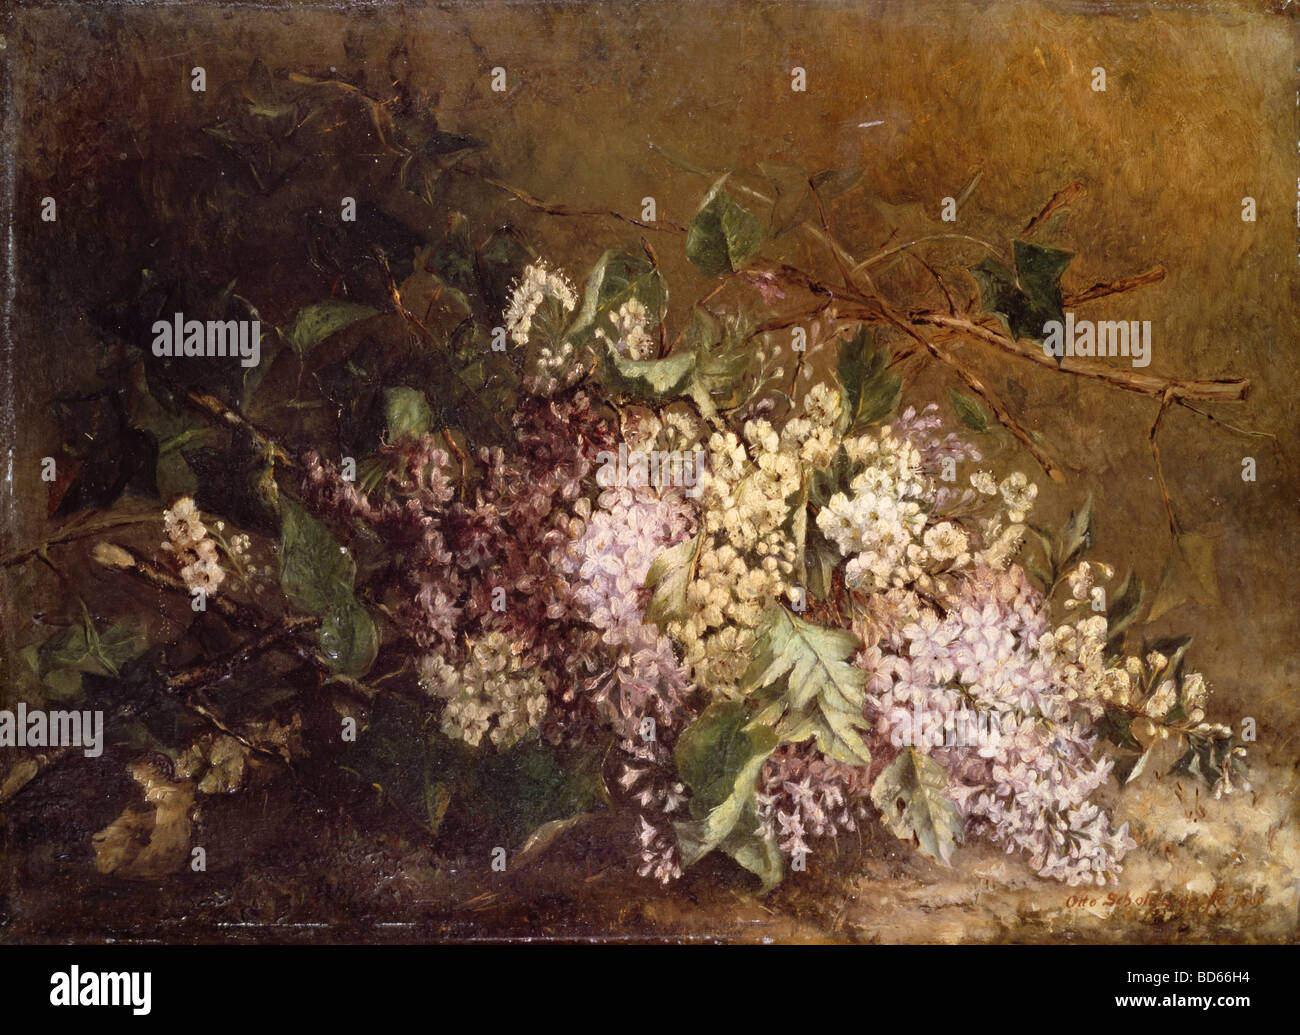 fine arts, Scholderer, Otto (1834 - 1902), painting, 'Stillife with Lilac' ('Fliederstilleben'), - Stock Image